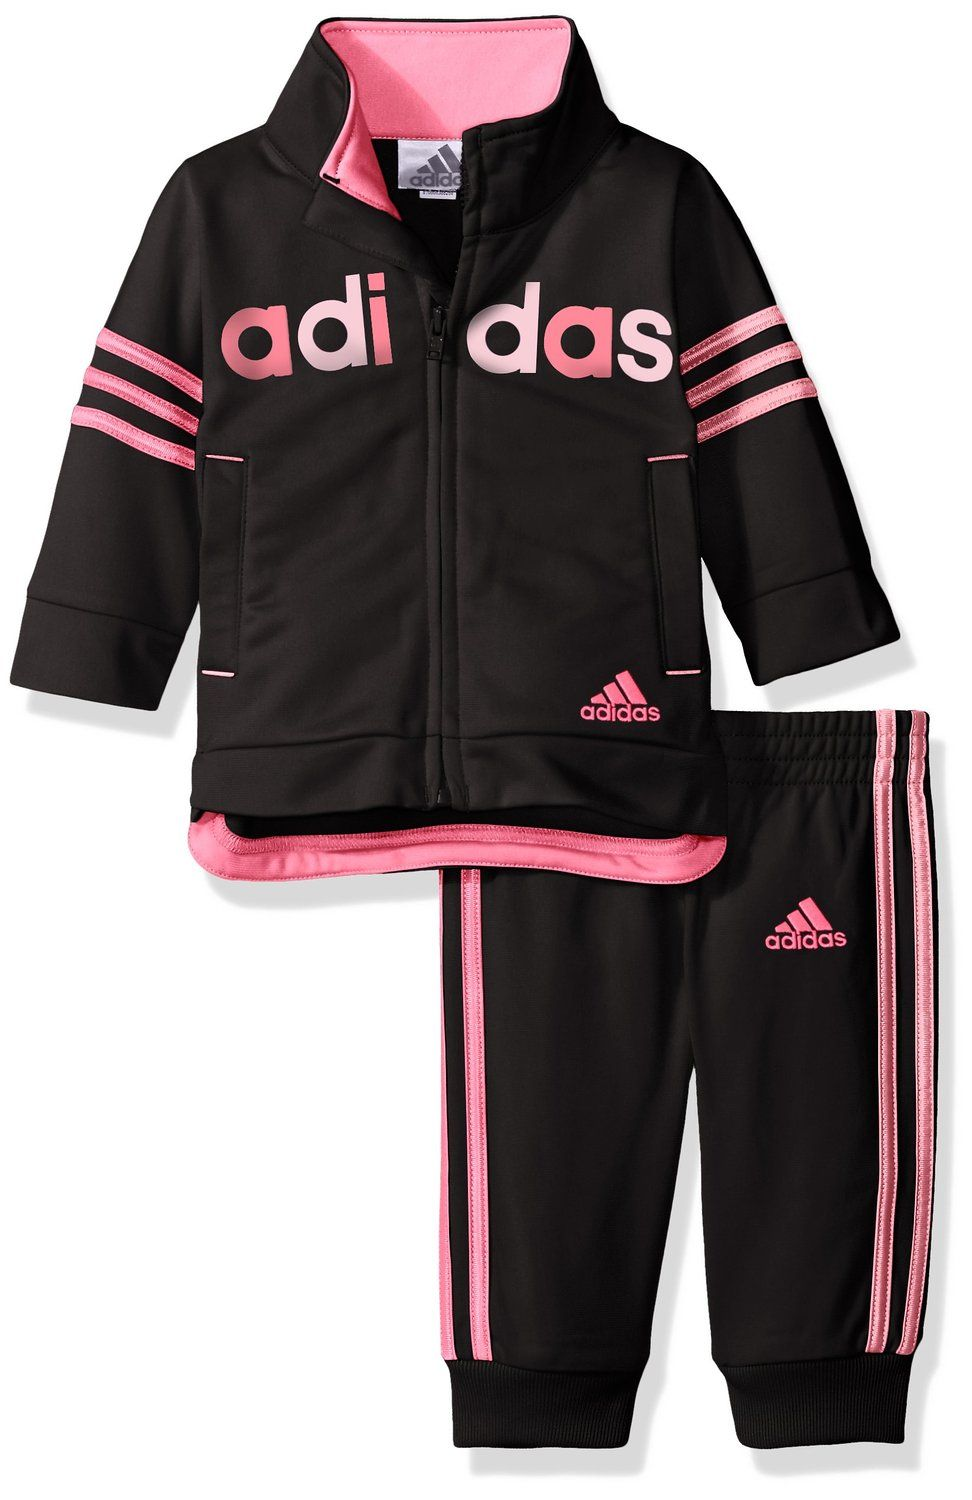 Adidas Kids Clothing & Baby Clothes Macy's